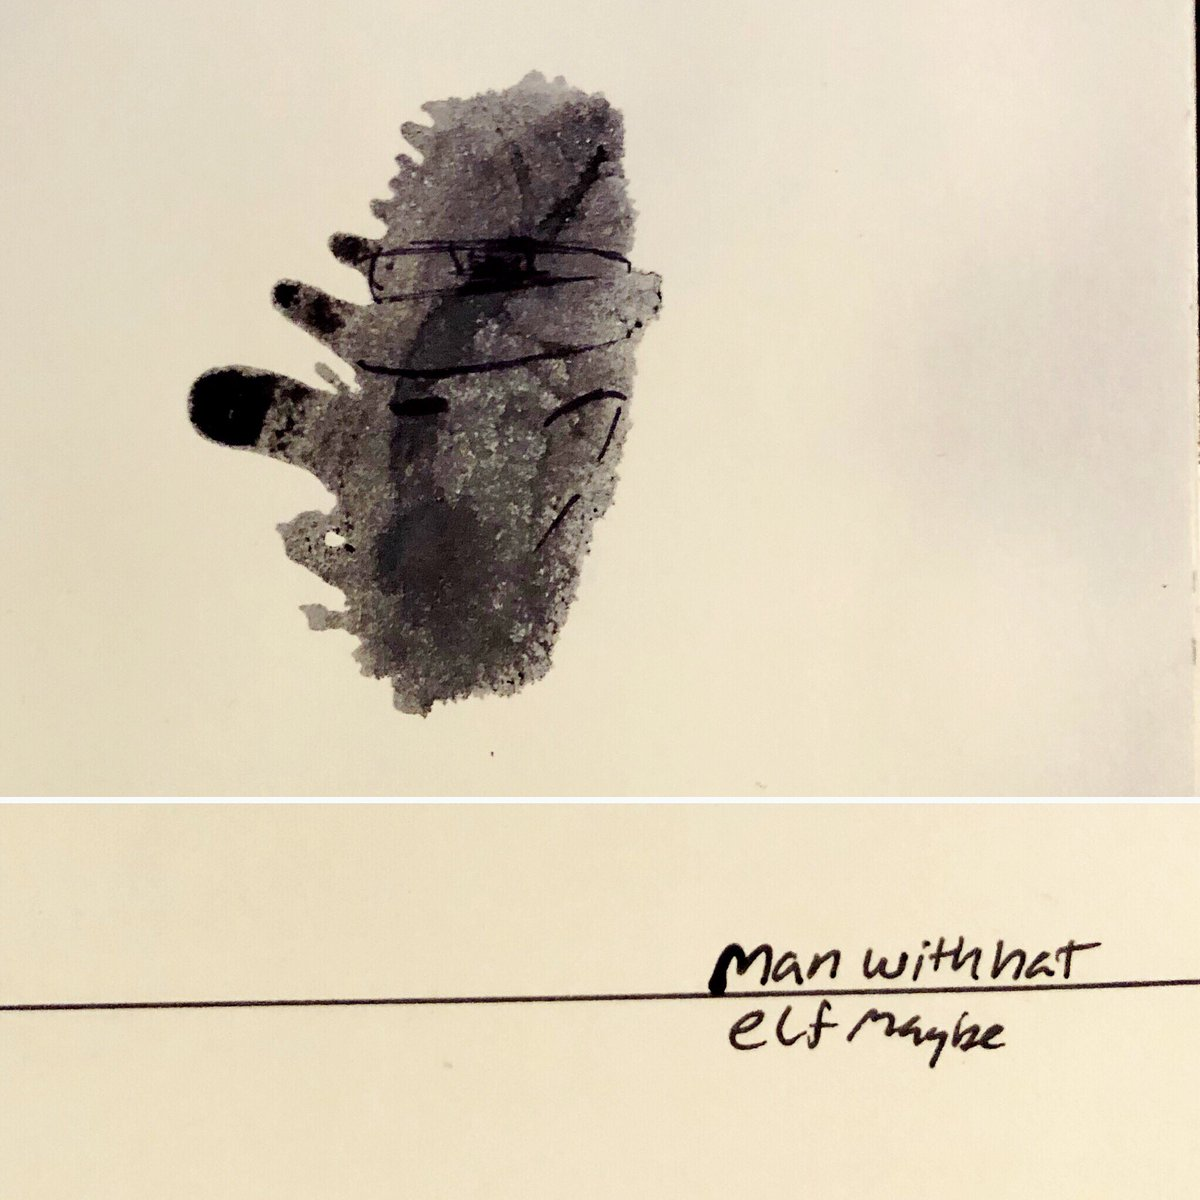 From a series of ink splat art things I made back in college & my little note. #TBT #Art #Rorschach #ElfMaybe